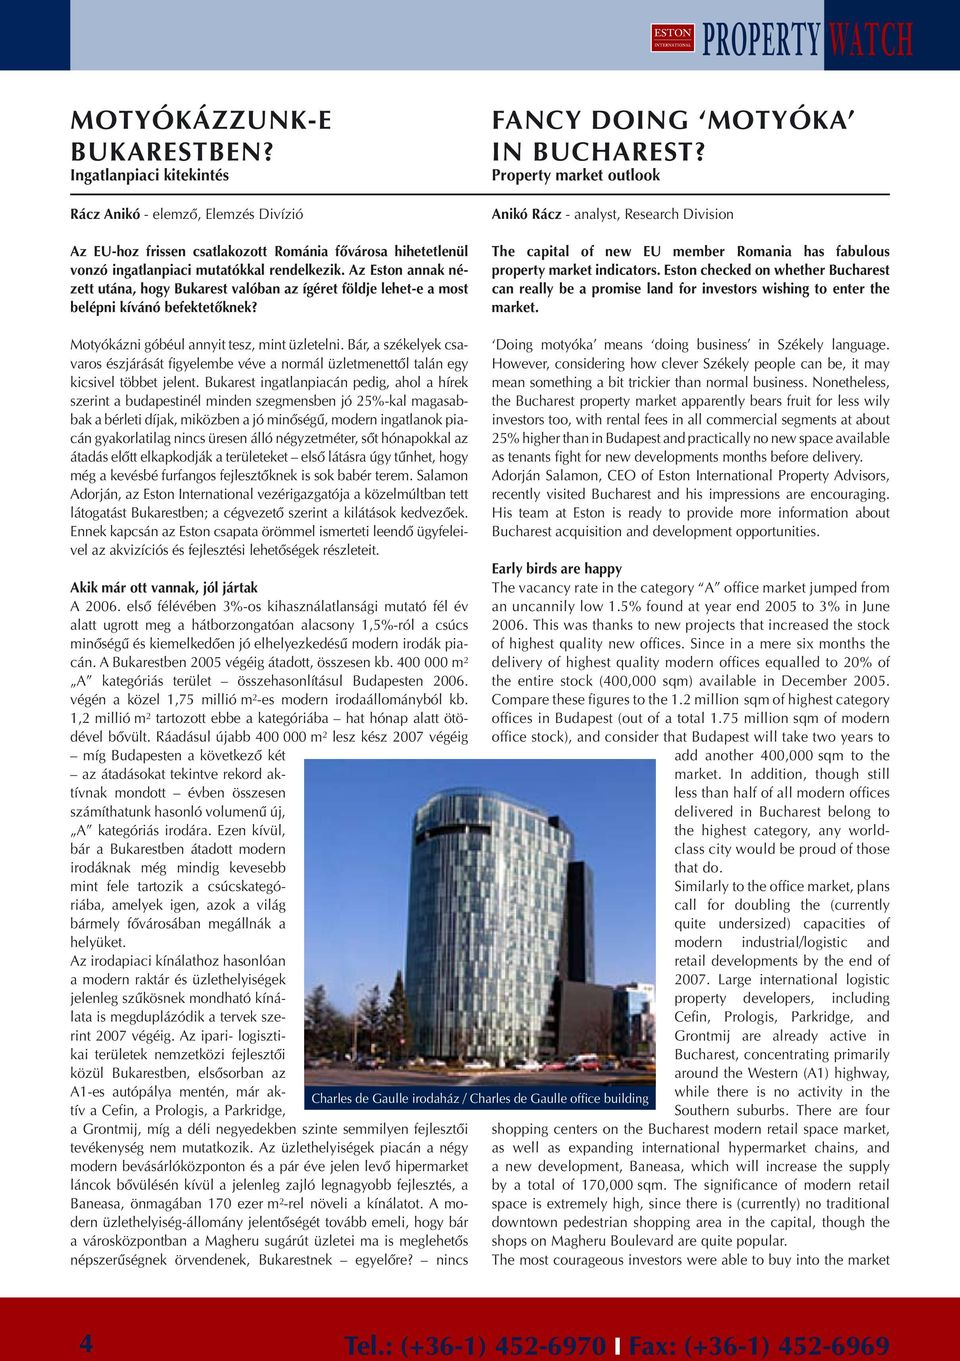 Property market outlook Aikó Rácz - aalyst, Research Divisio The capital of ew EU member Romaia has fabulous property market idicators.